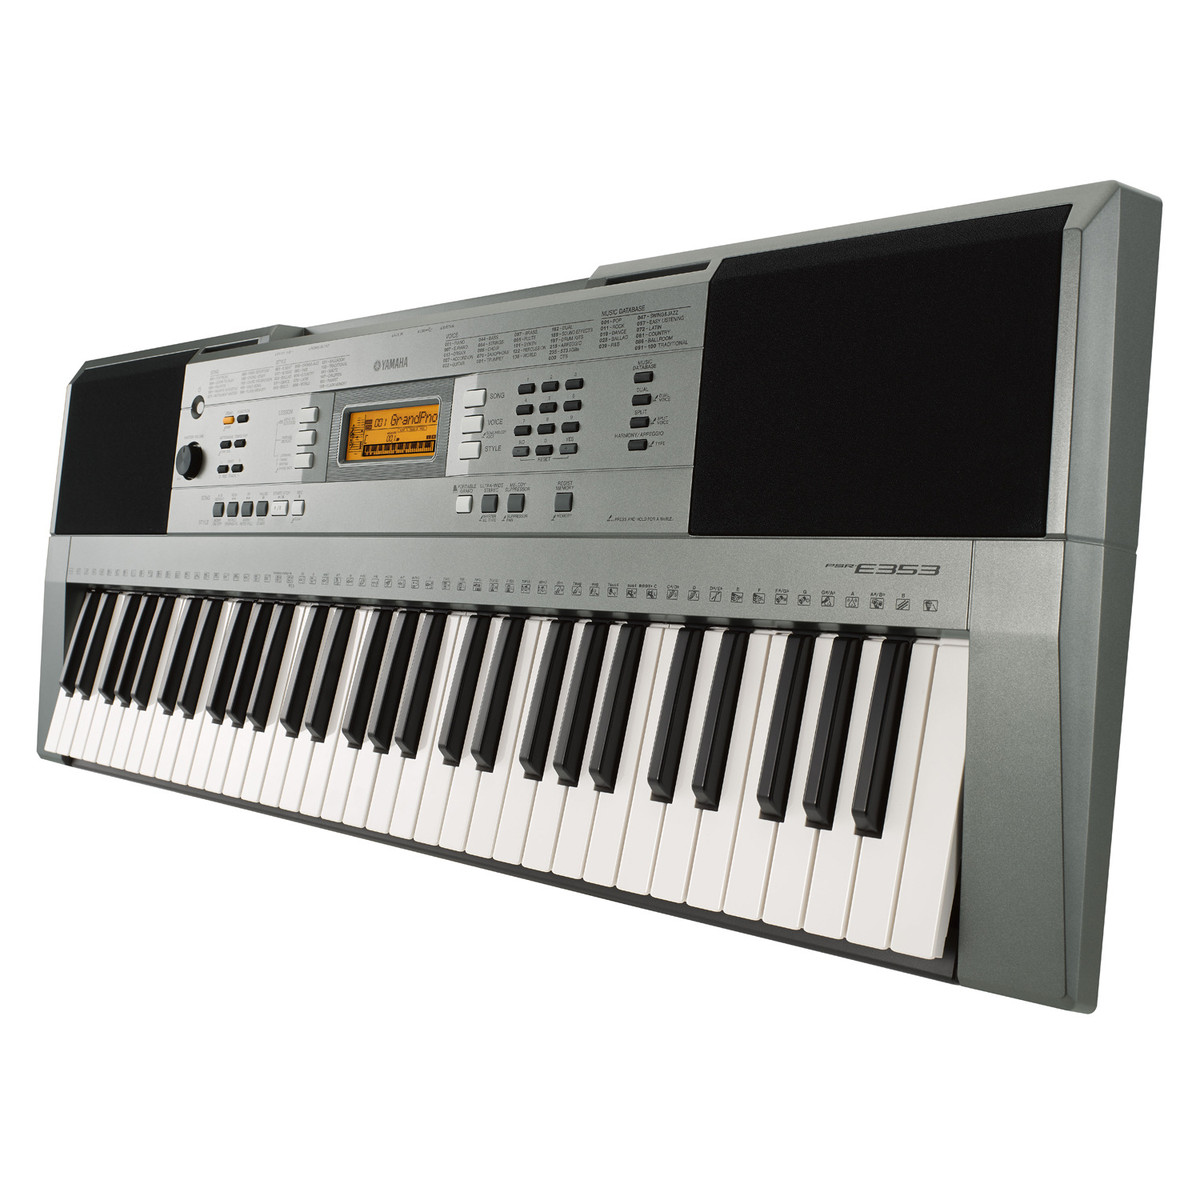 yamaha psr e353 portable keyboard at. Black Bedroom Furniture Sets. Home Design Ideas